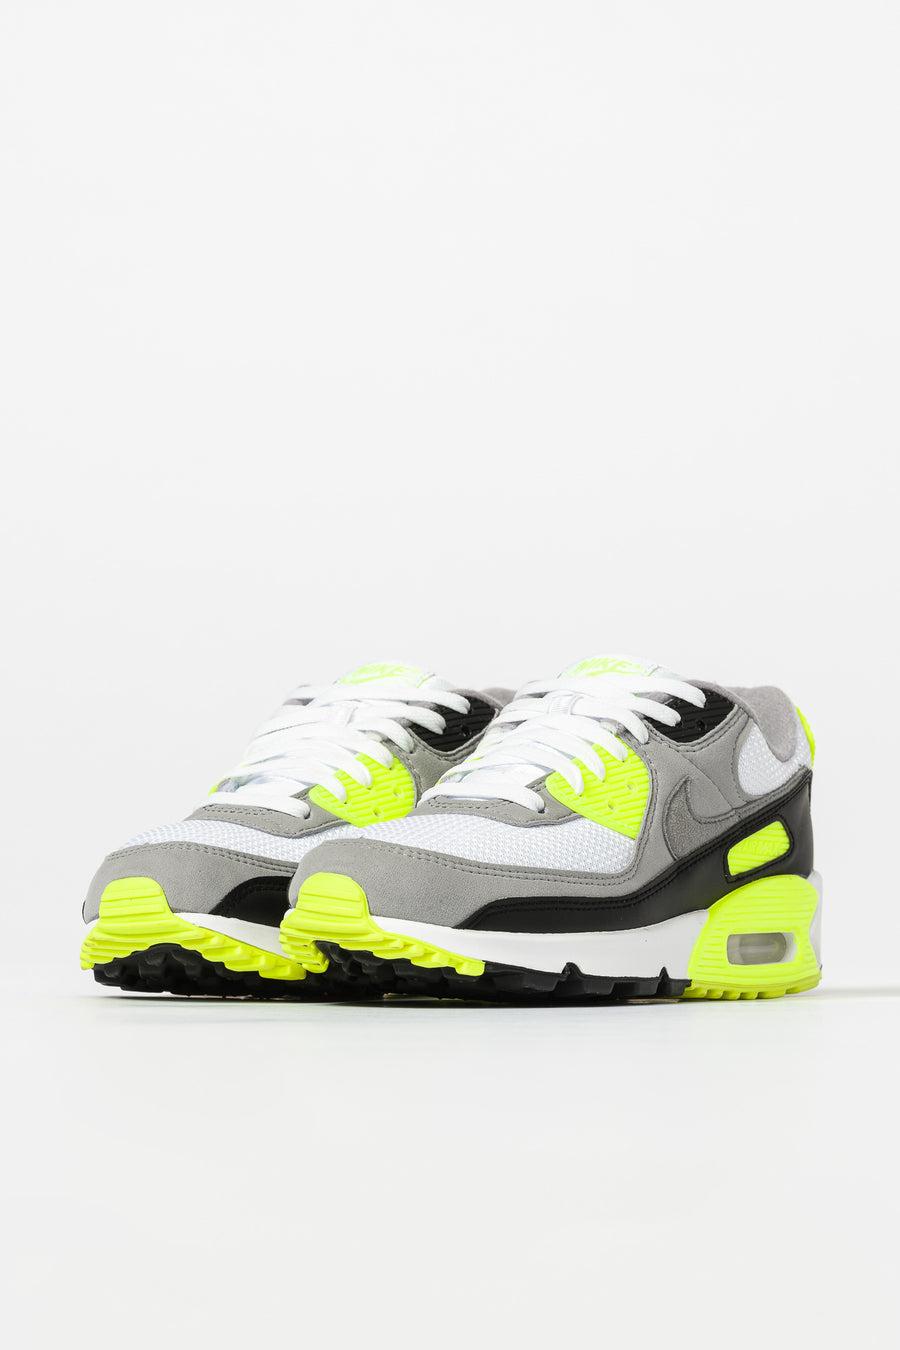 Air Max 90 in WhiteGreyVoltBlack